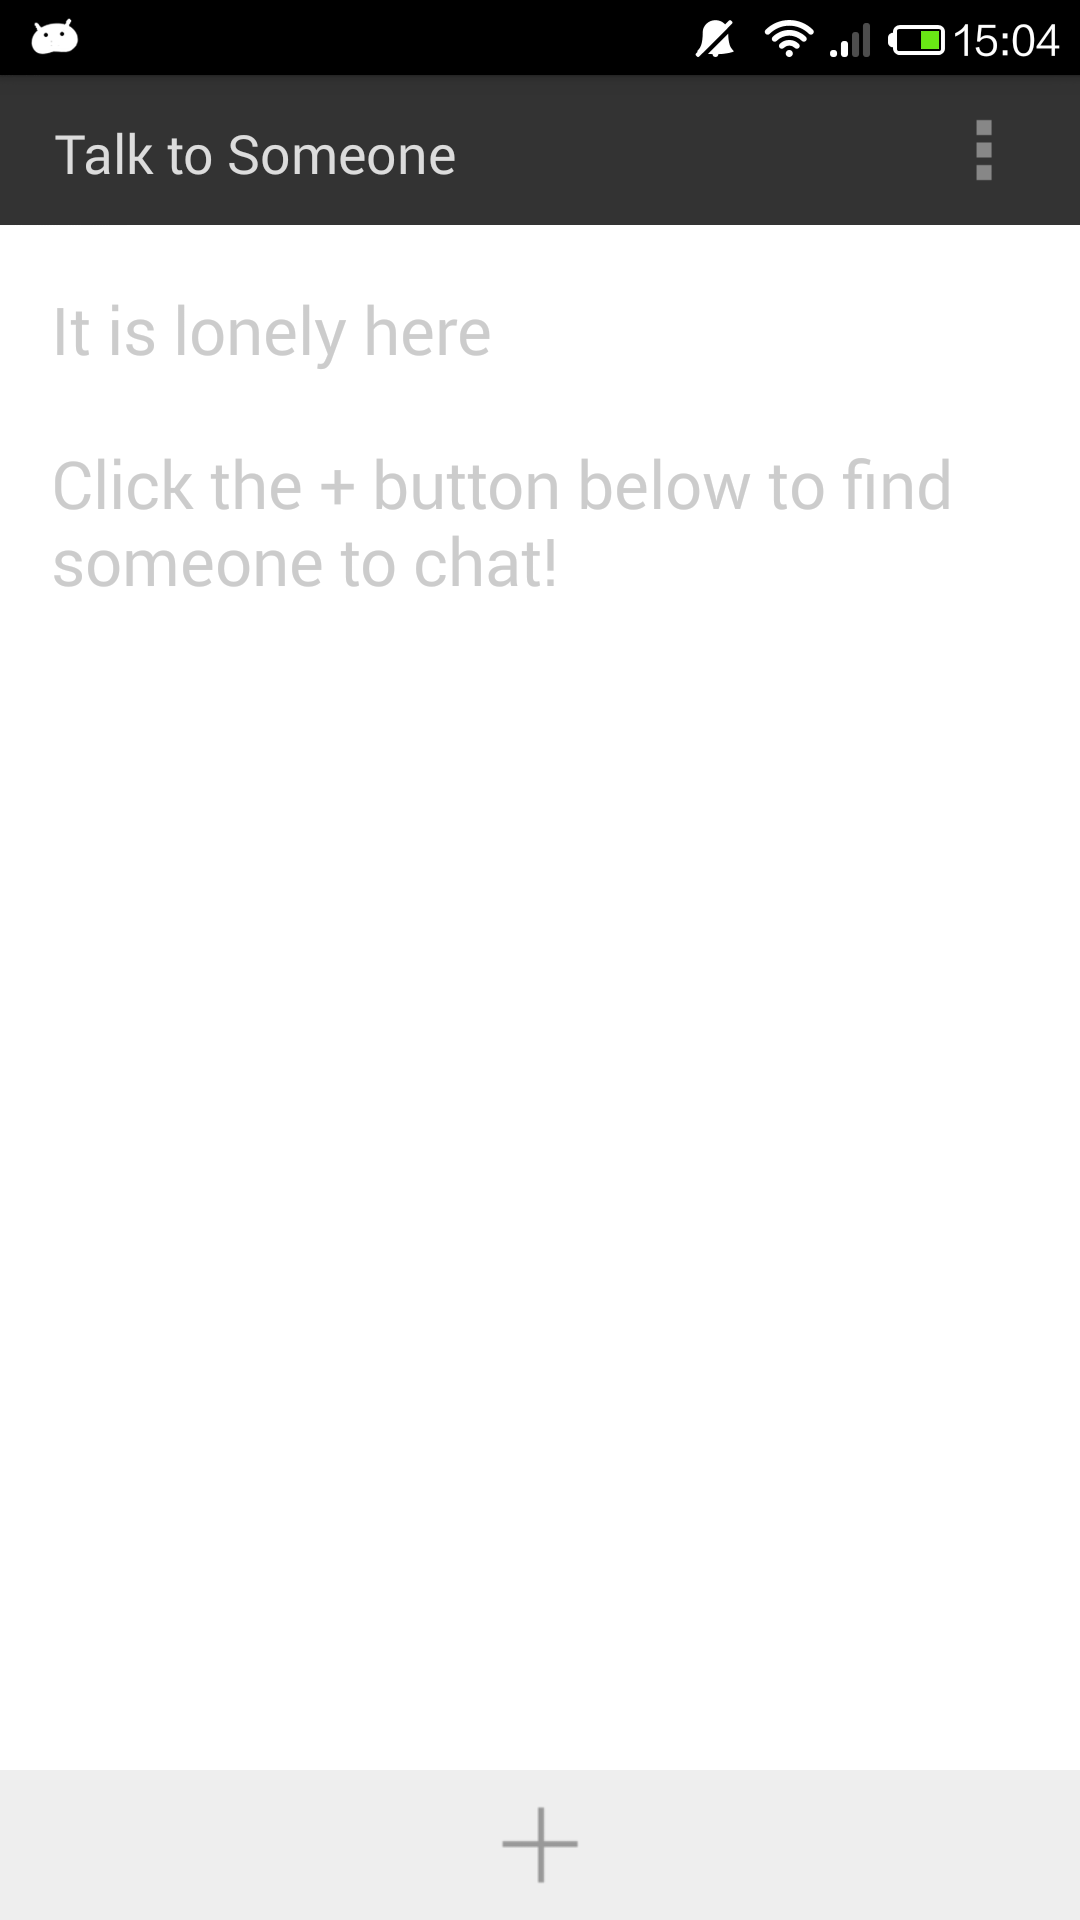 find someone to chat with